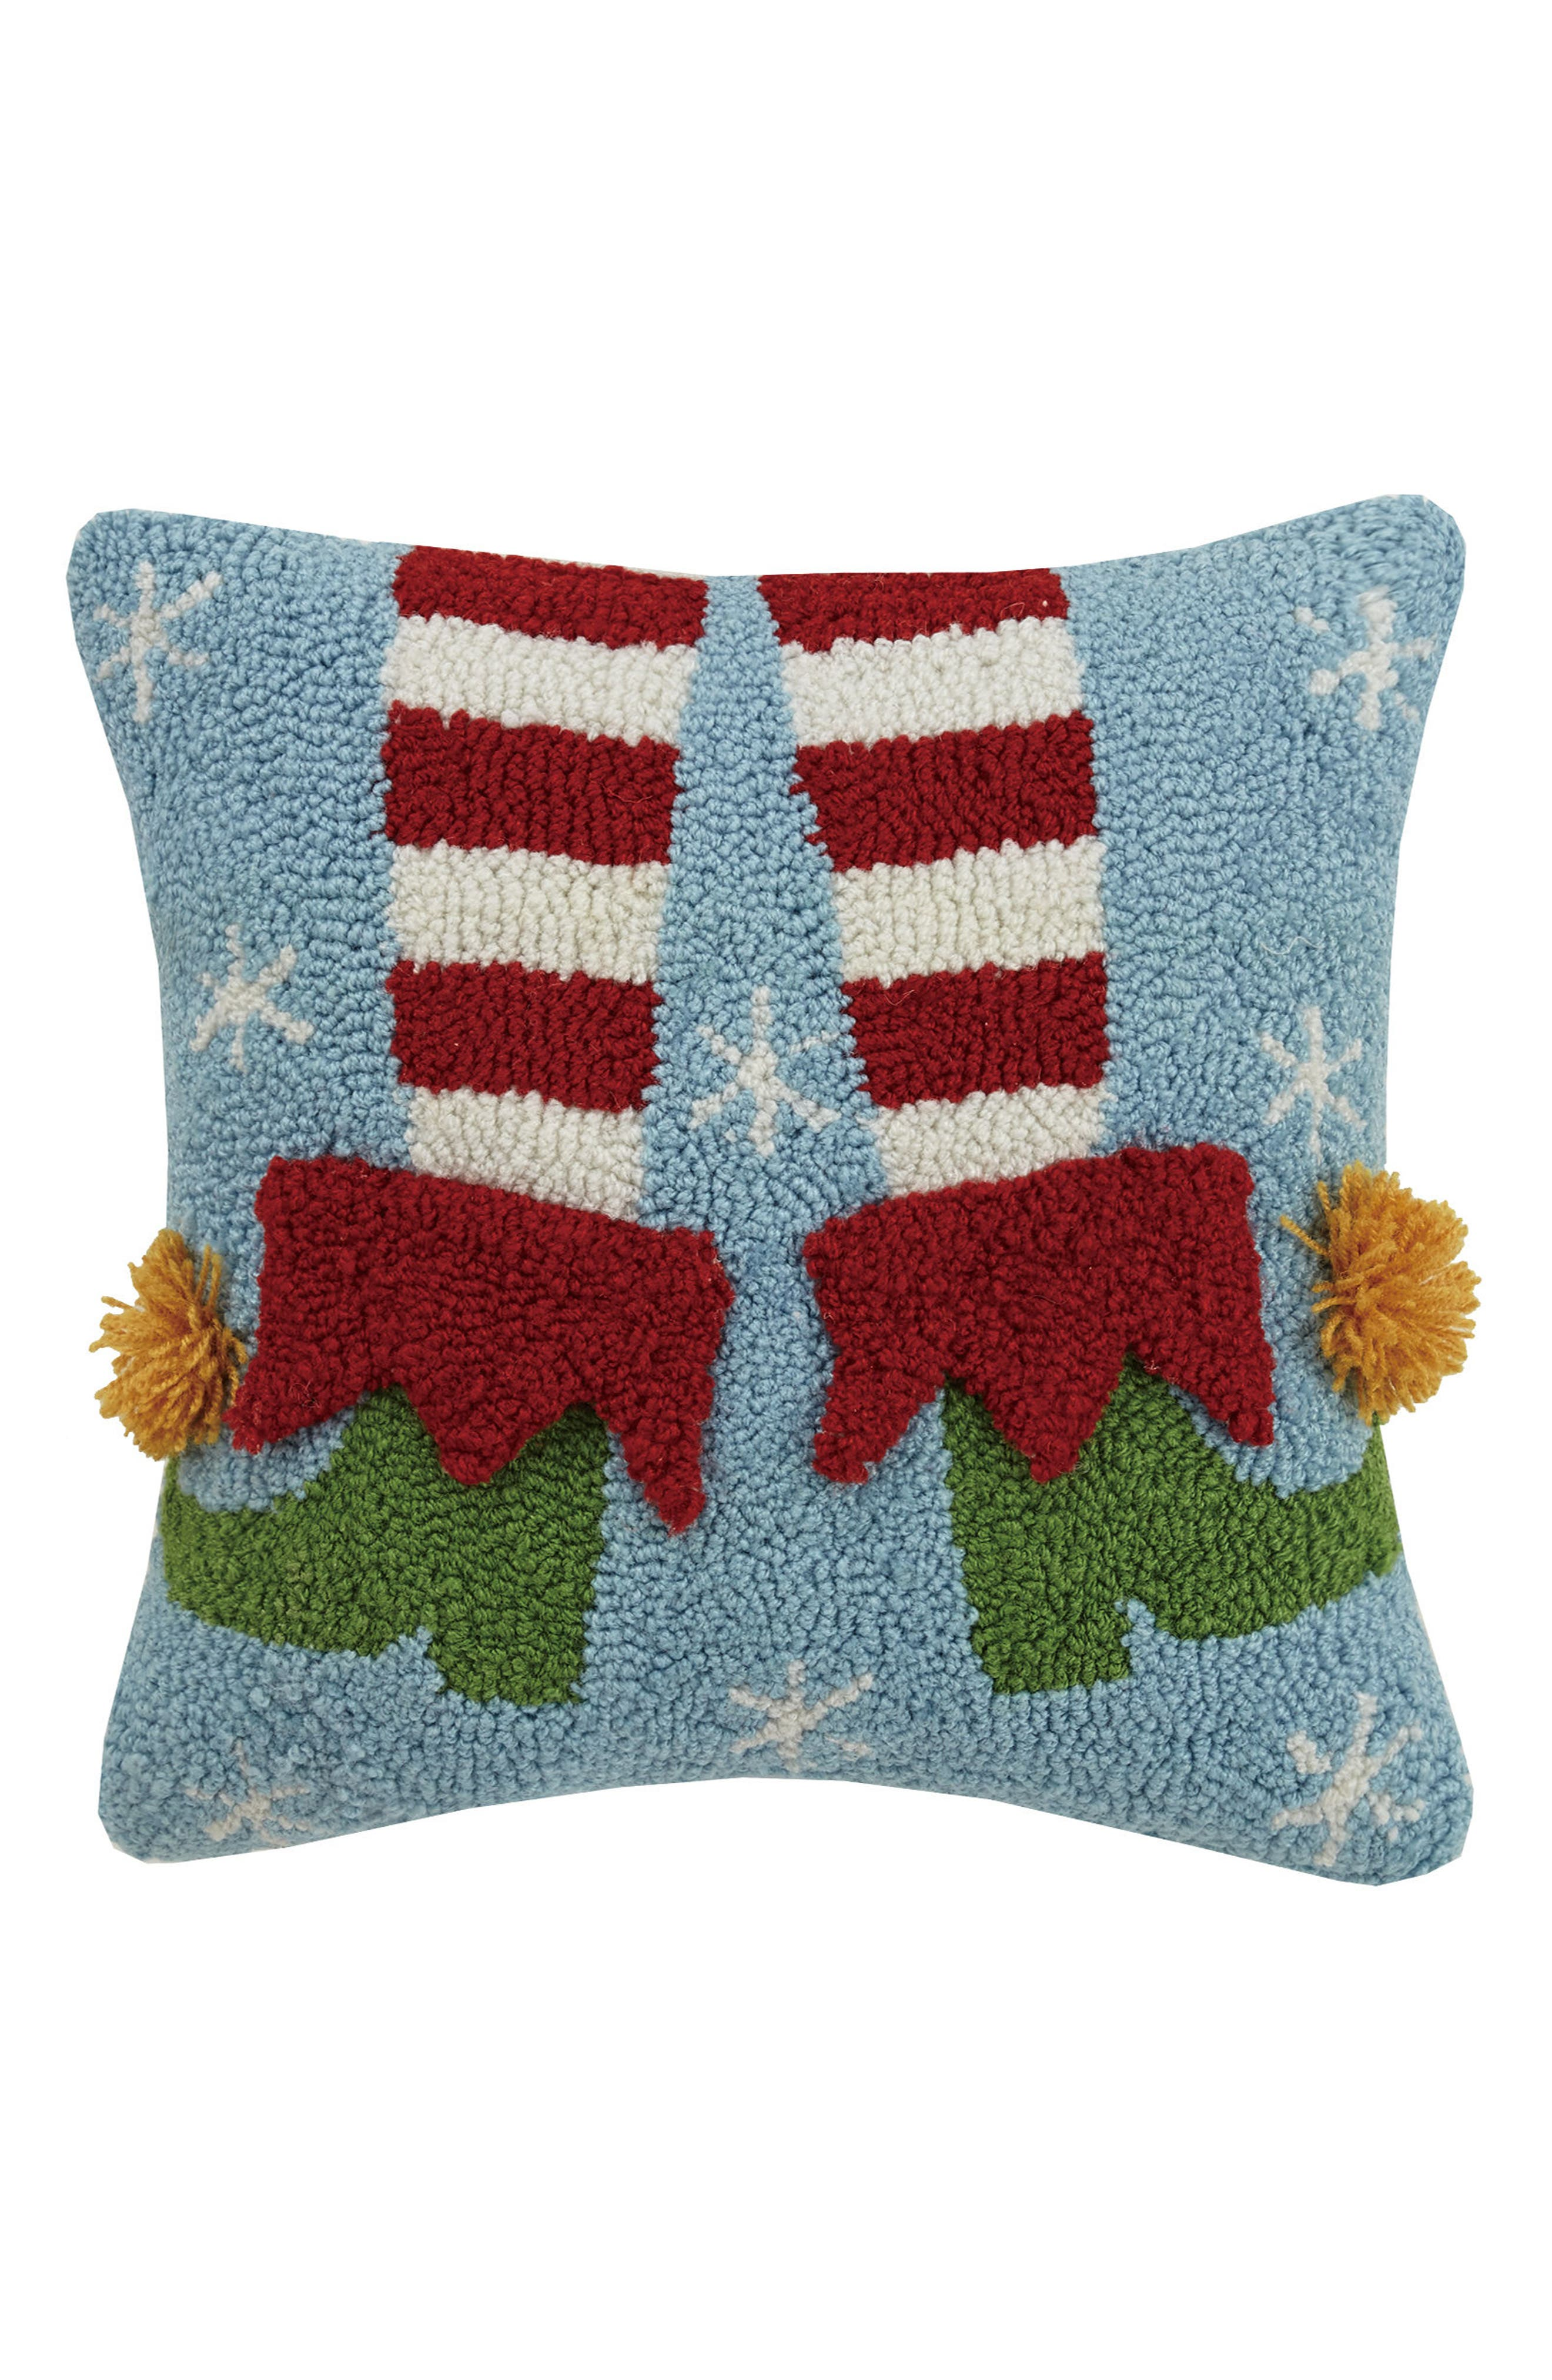 Elf Legs Hooked Accent Pillow,                             Main thumbnail 1, color,                             400